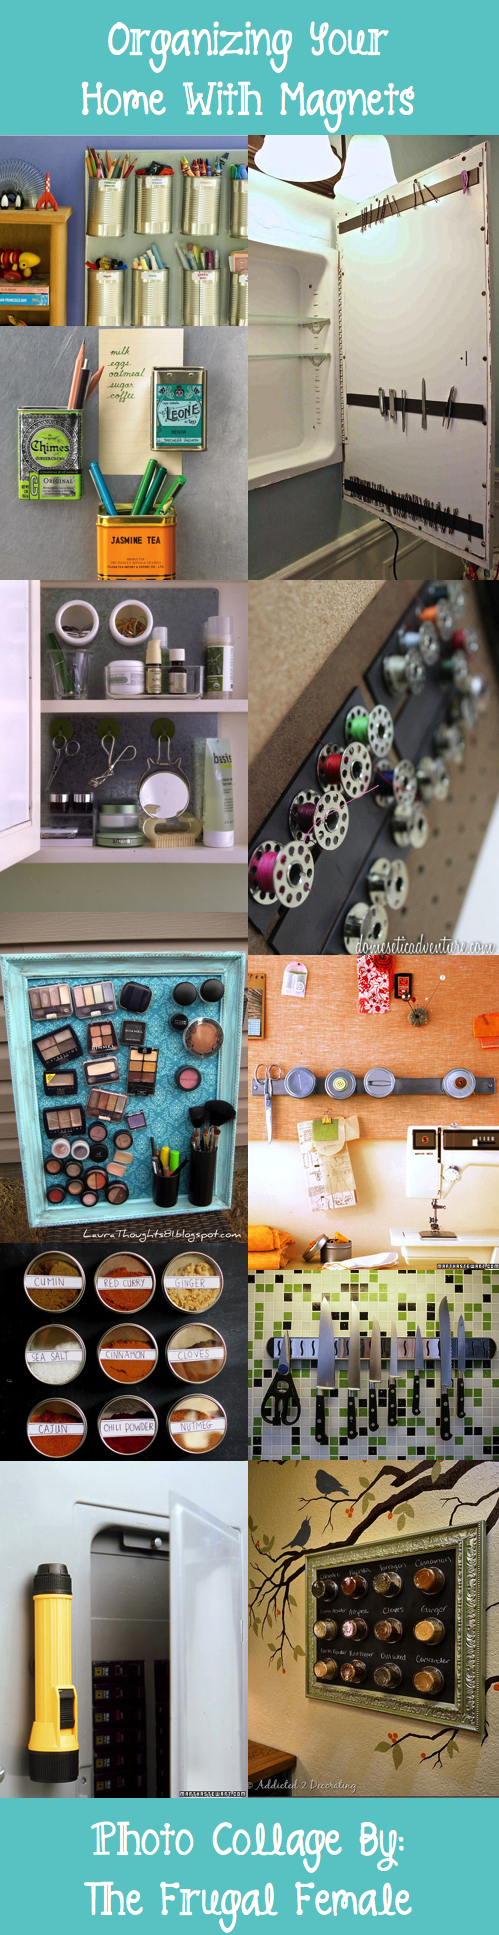 Organizing your home with magnets the frugal female - Simple ways of keeping your home organized using magnetic picture frames ...